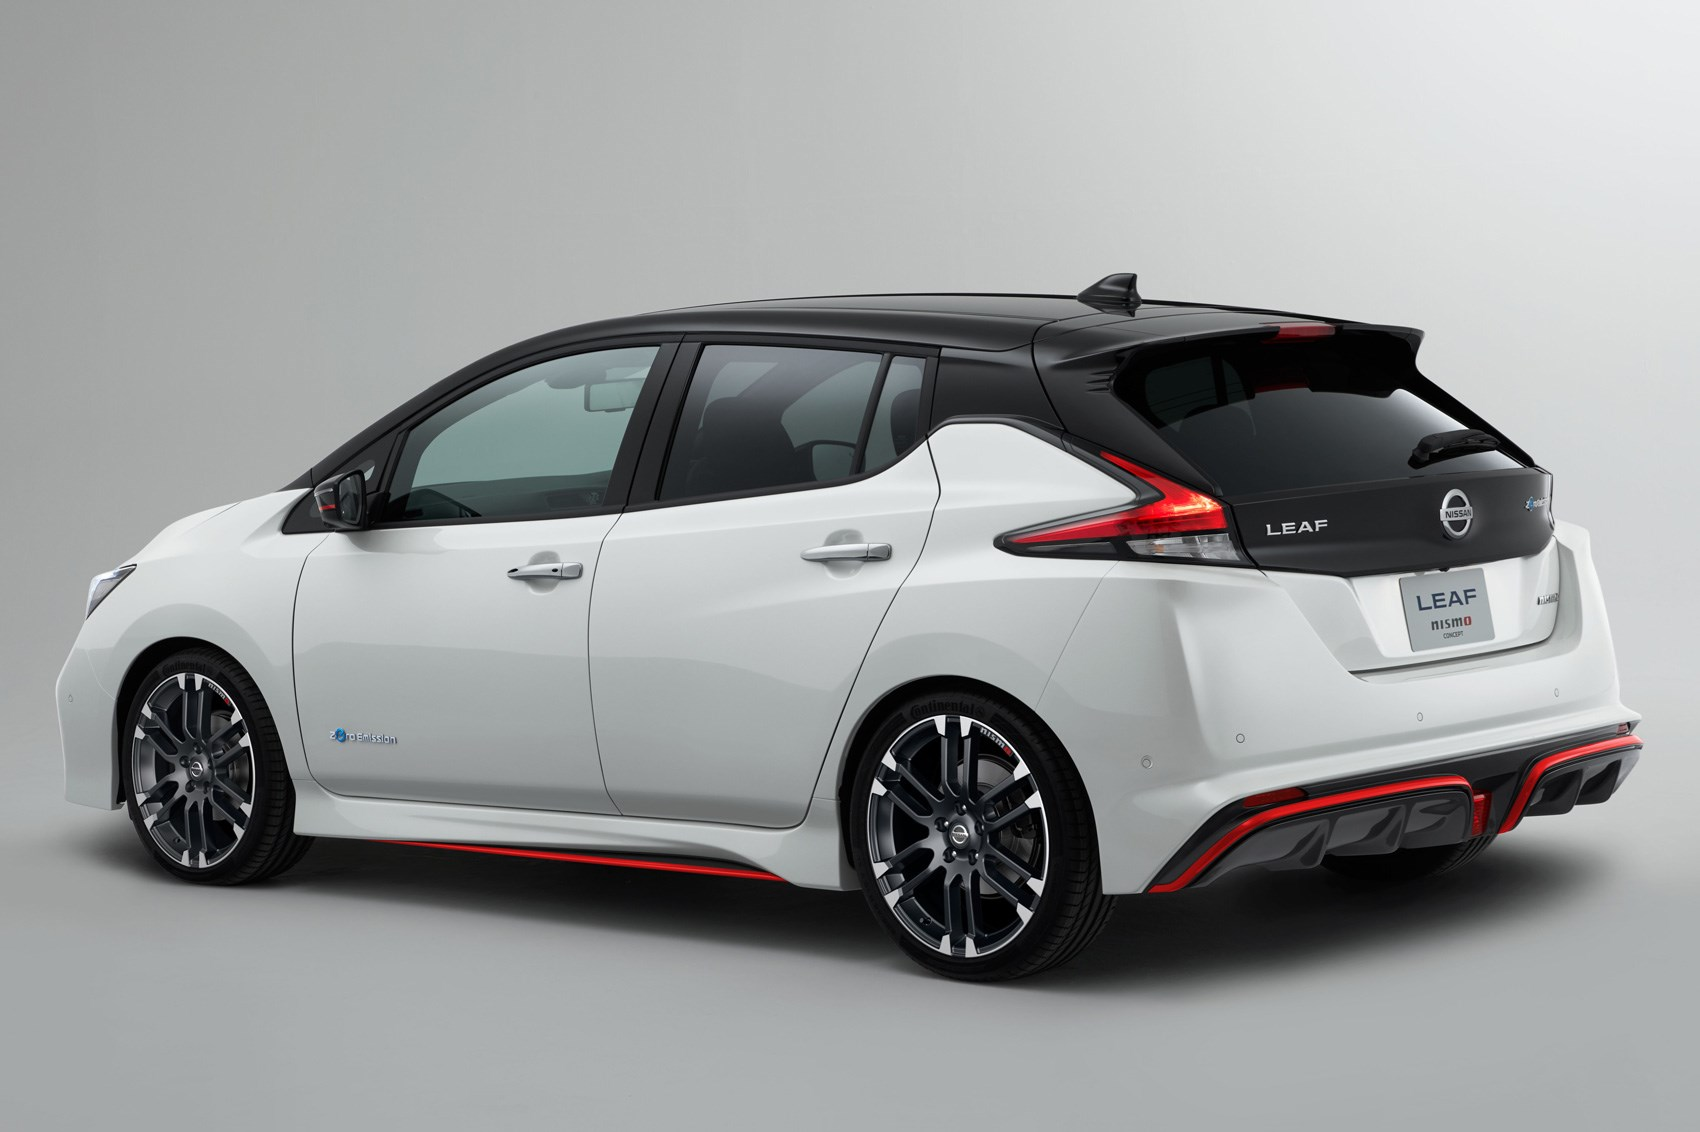 nismo nissan leaf concept confirmed for 2017 tokyo show by car magazine. Black Bedroom Furniture Sets. Home Design Ideas